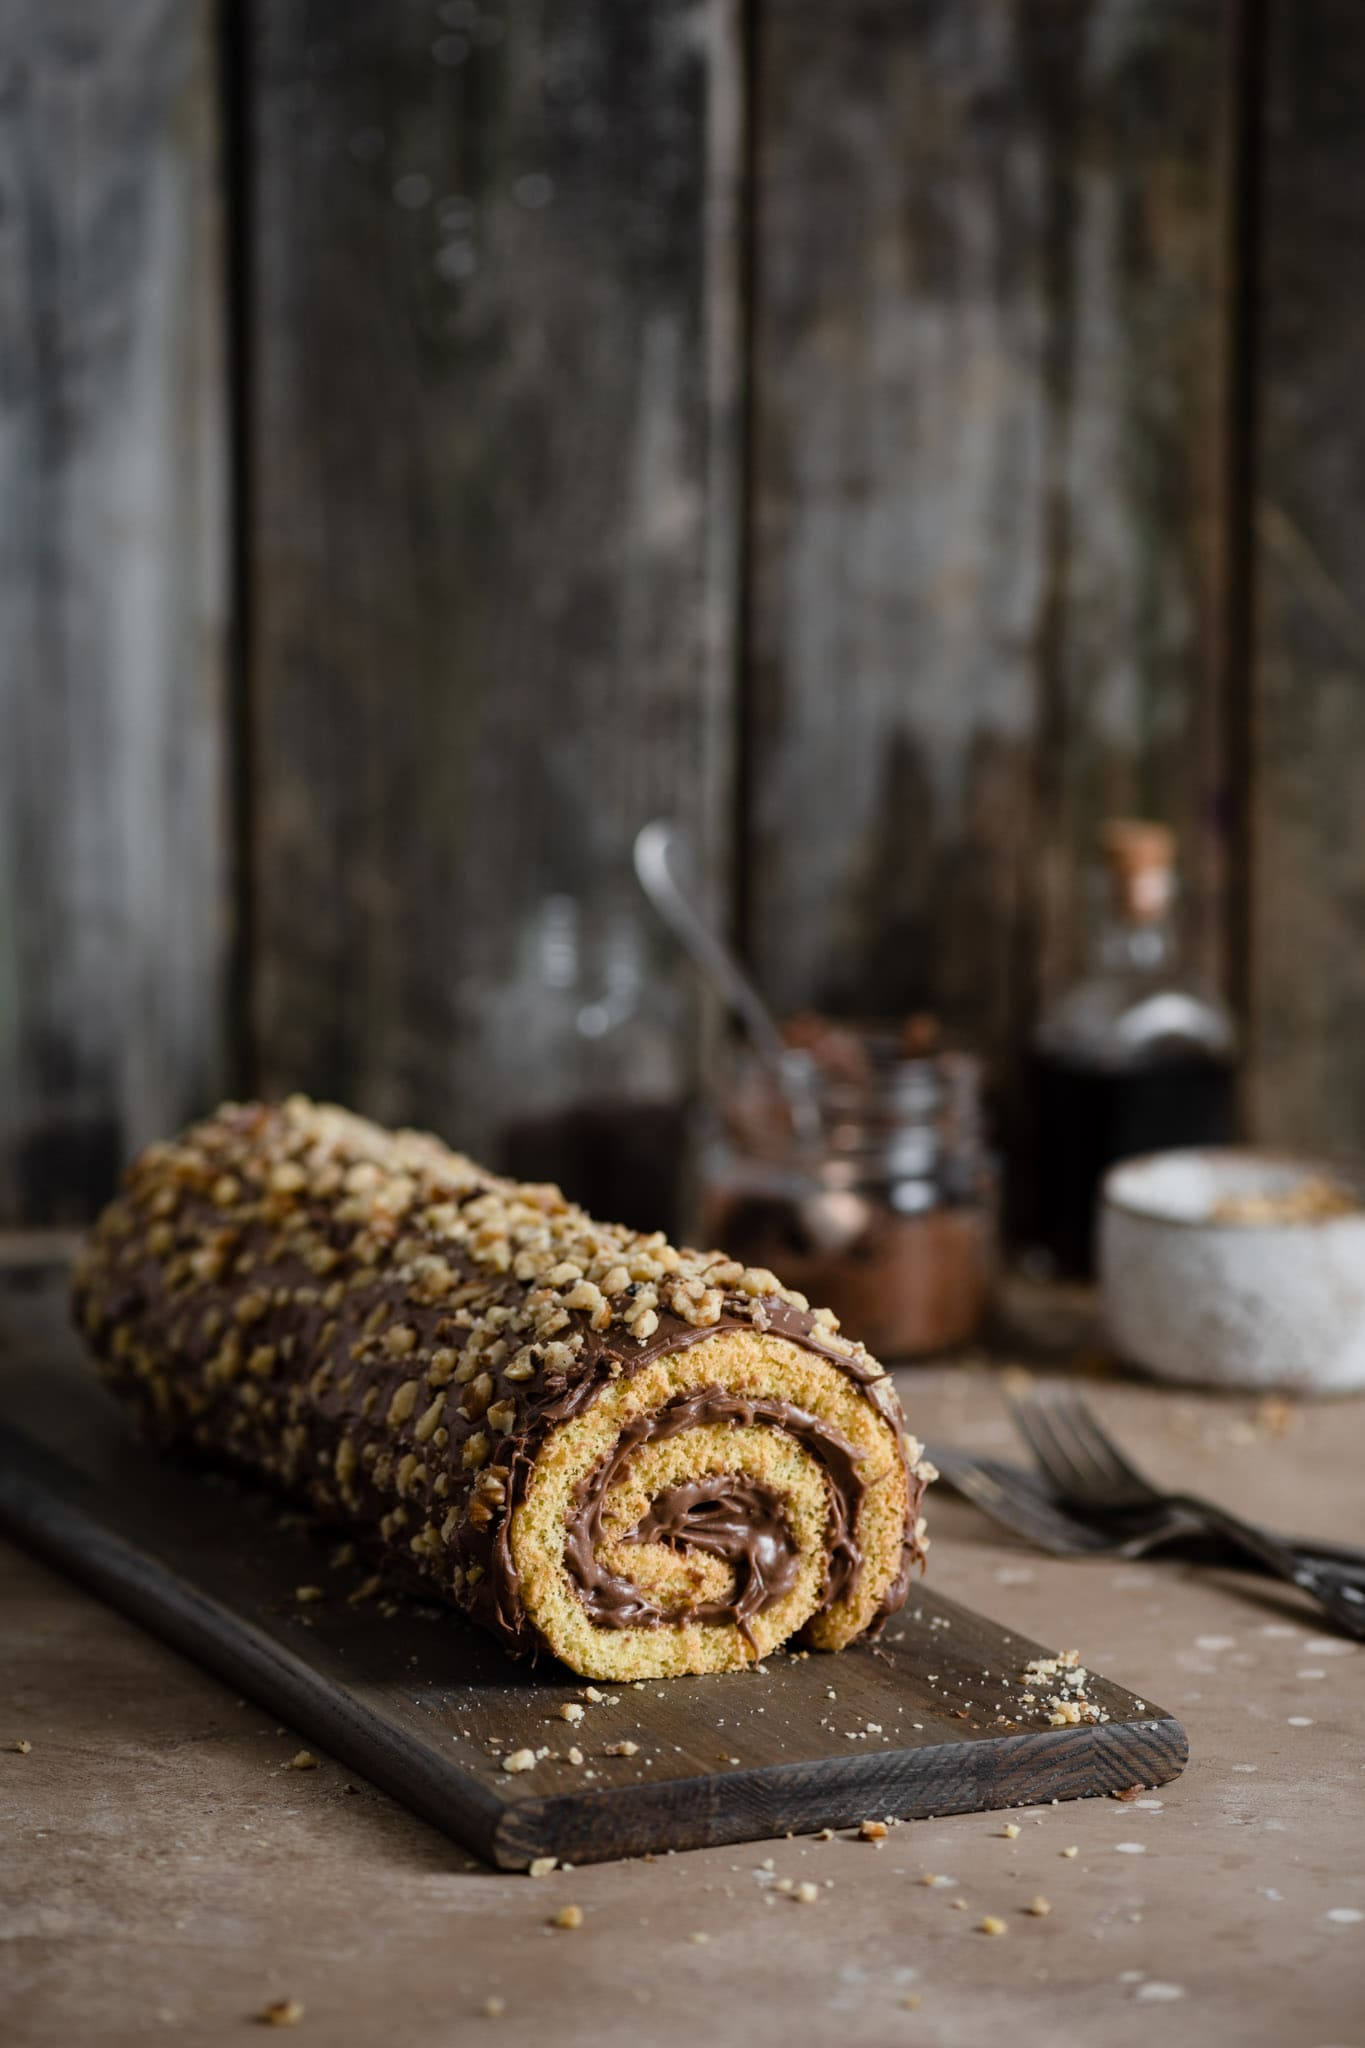 Swiss Roll with chocolate frosting and chopped walnuts.